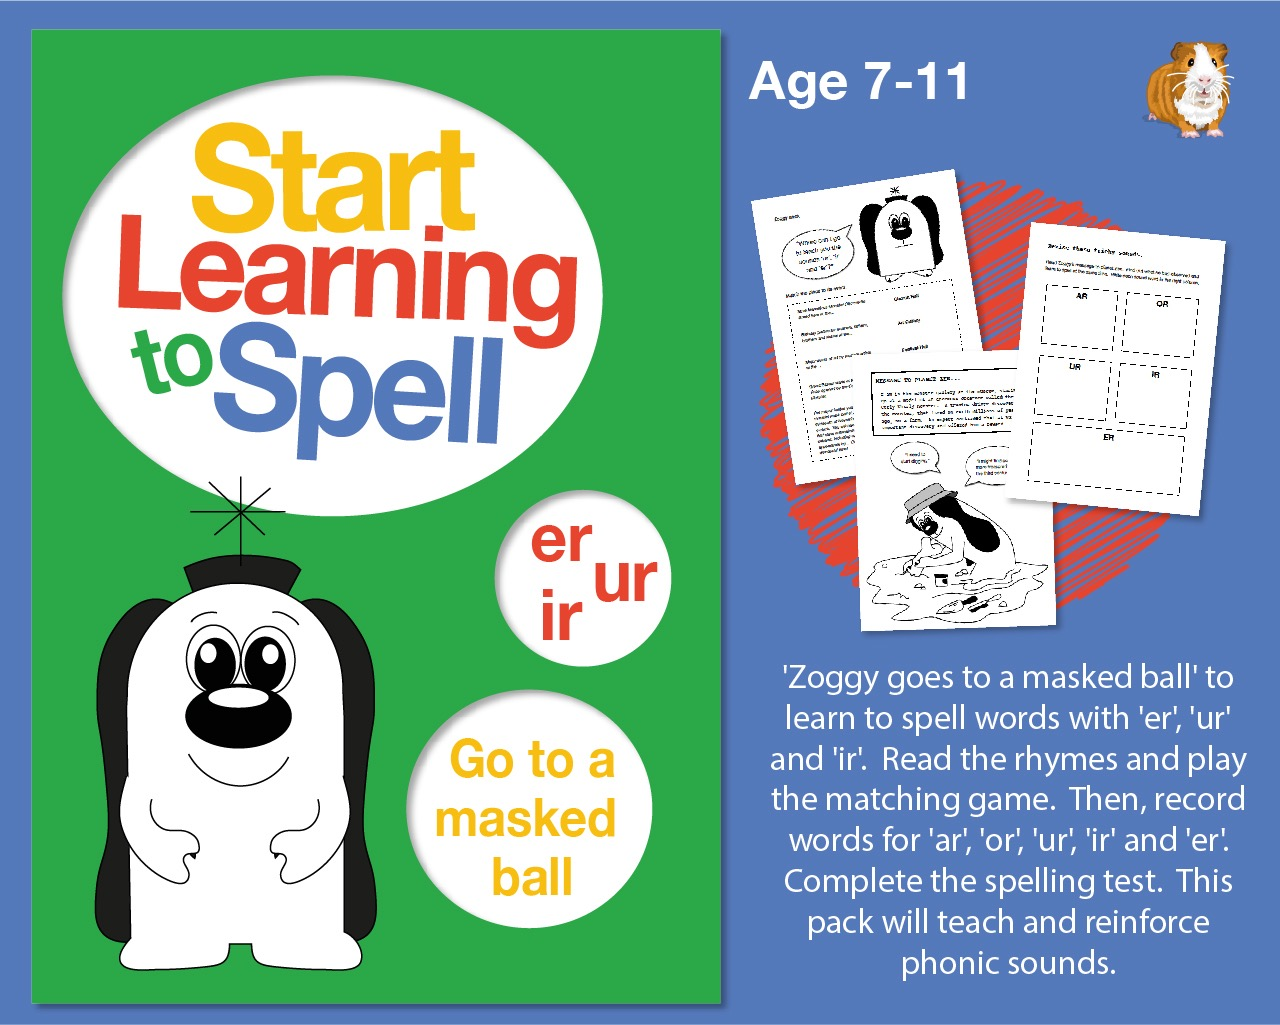 'Zoggy Goes To A Masked Ball' Learn To Spell Words With 'er, ur, ir' (7-11 years)